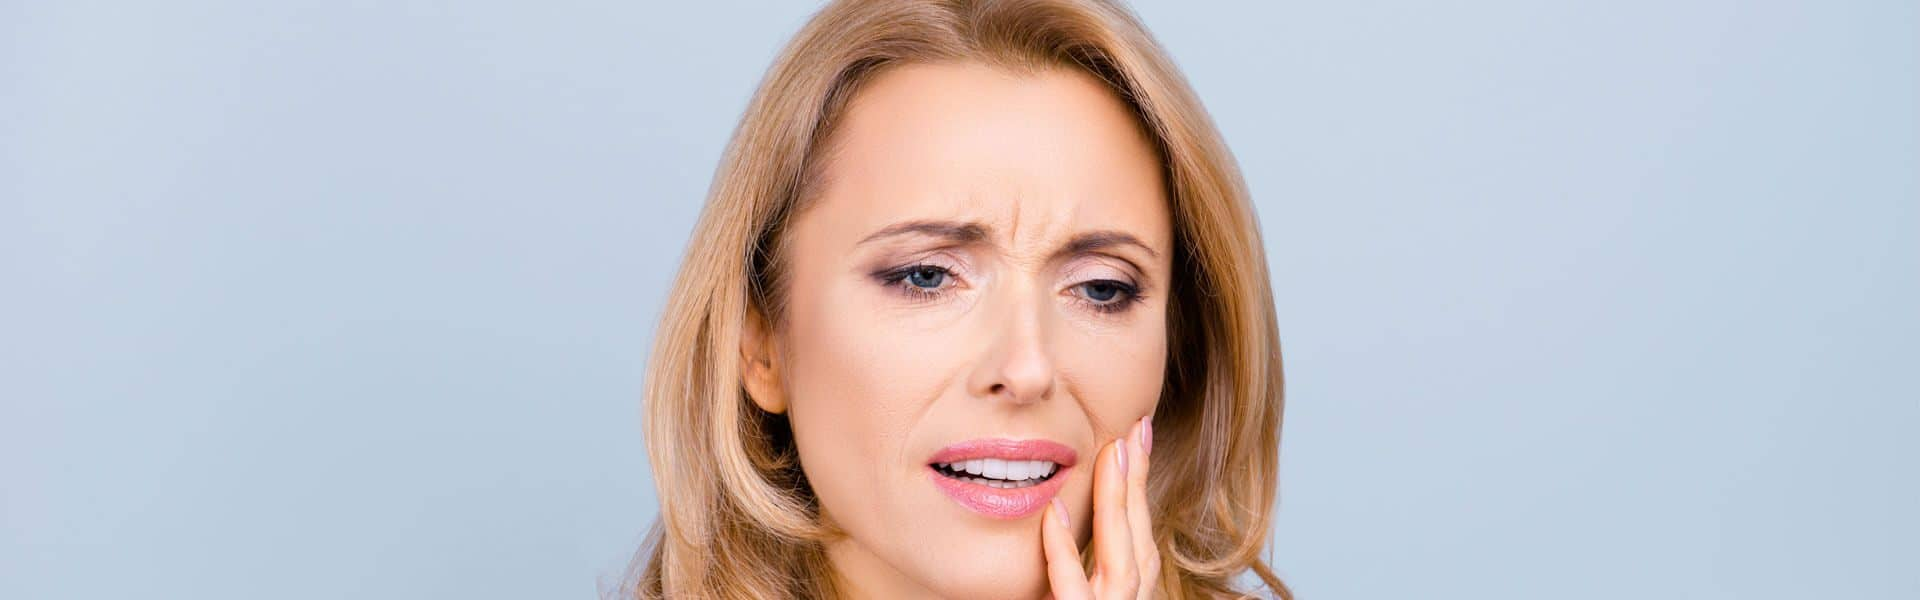 Treating Bruxism